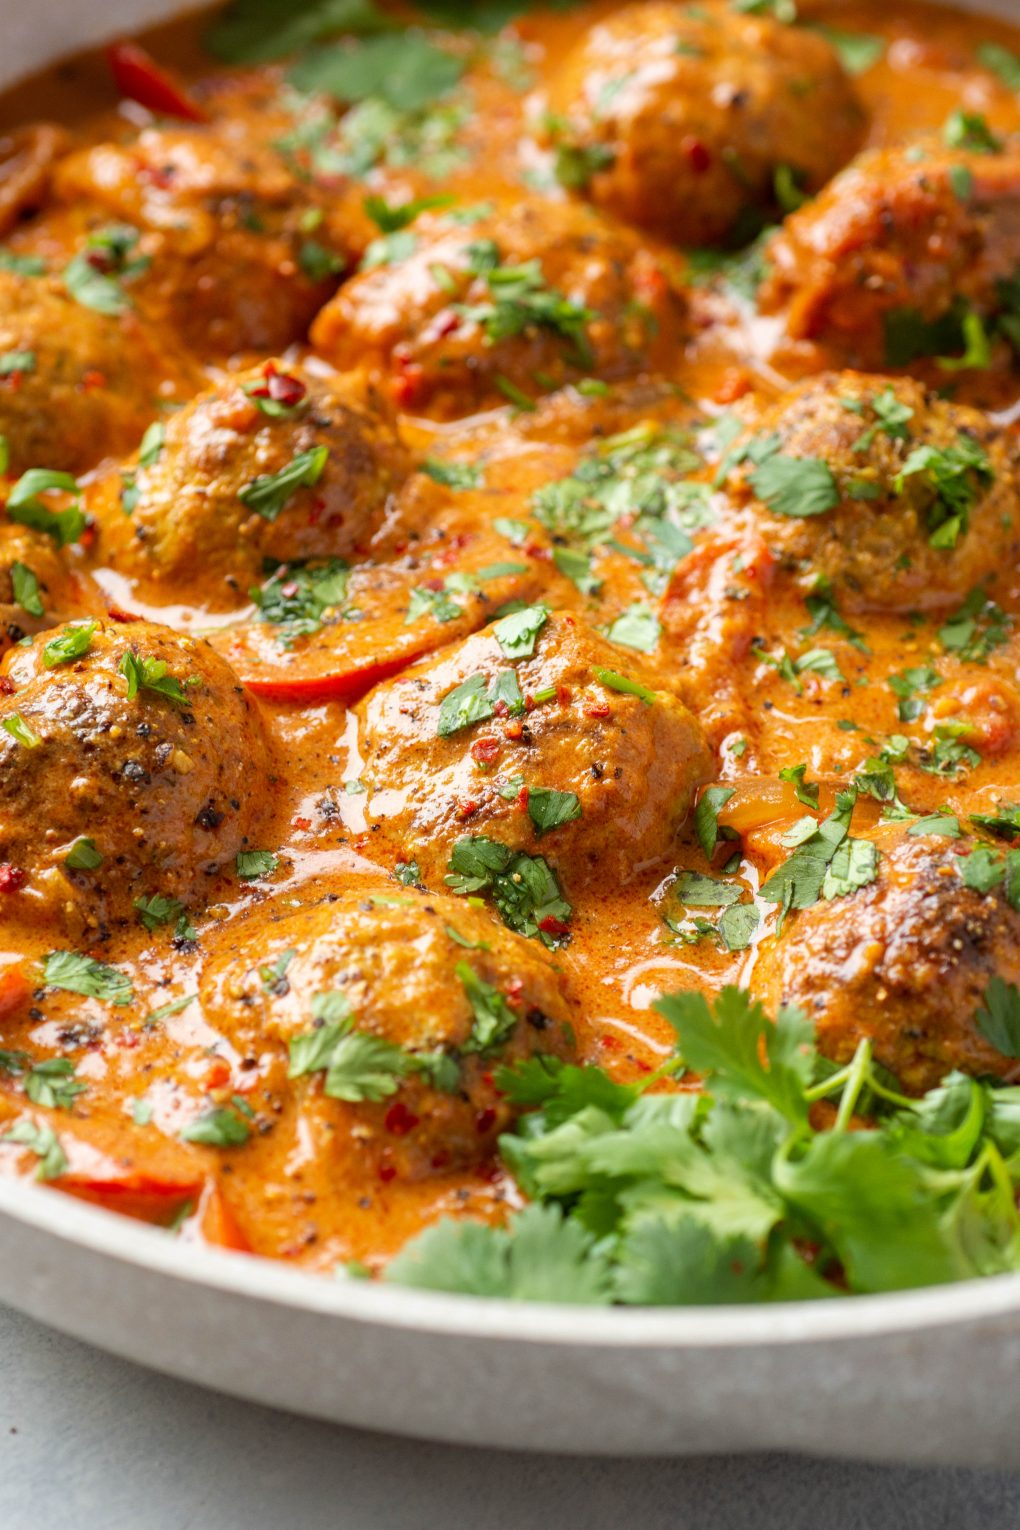 Close up side angle shot of a large white skillet filled with meatballs in a vibrant red curry sauce. Topped with chopped fresh cilantro.